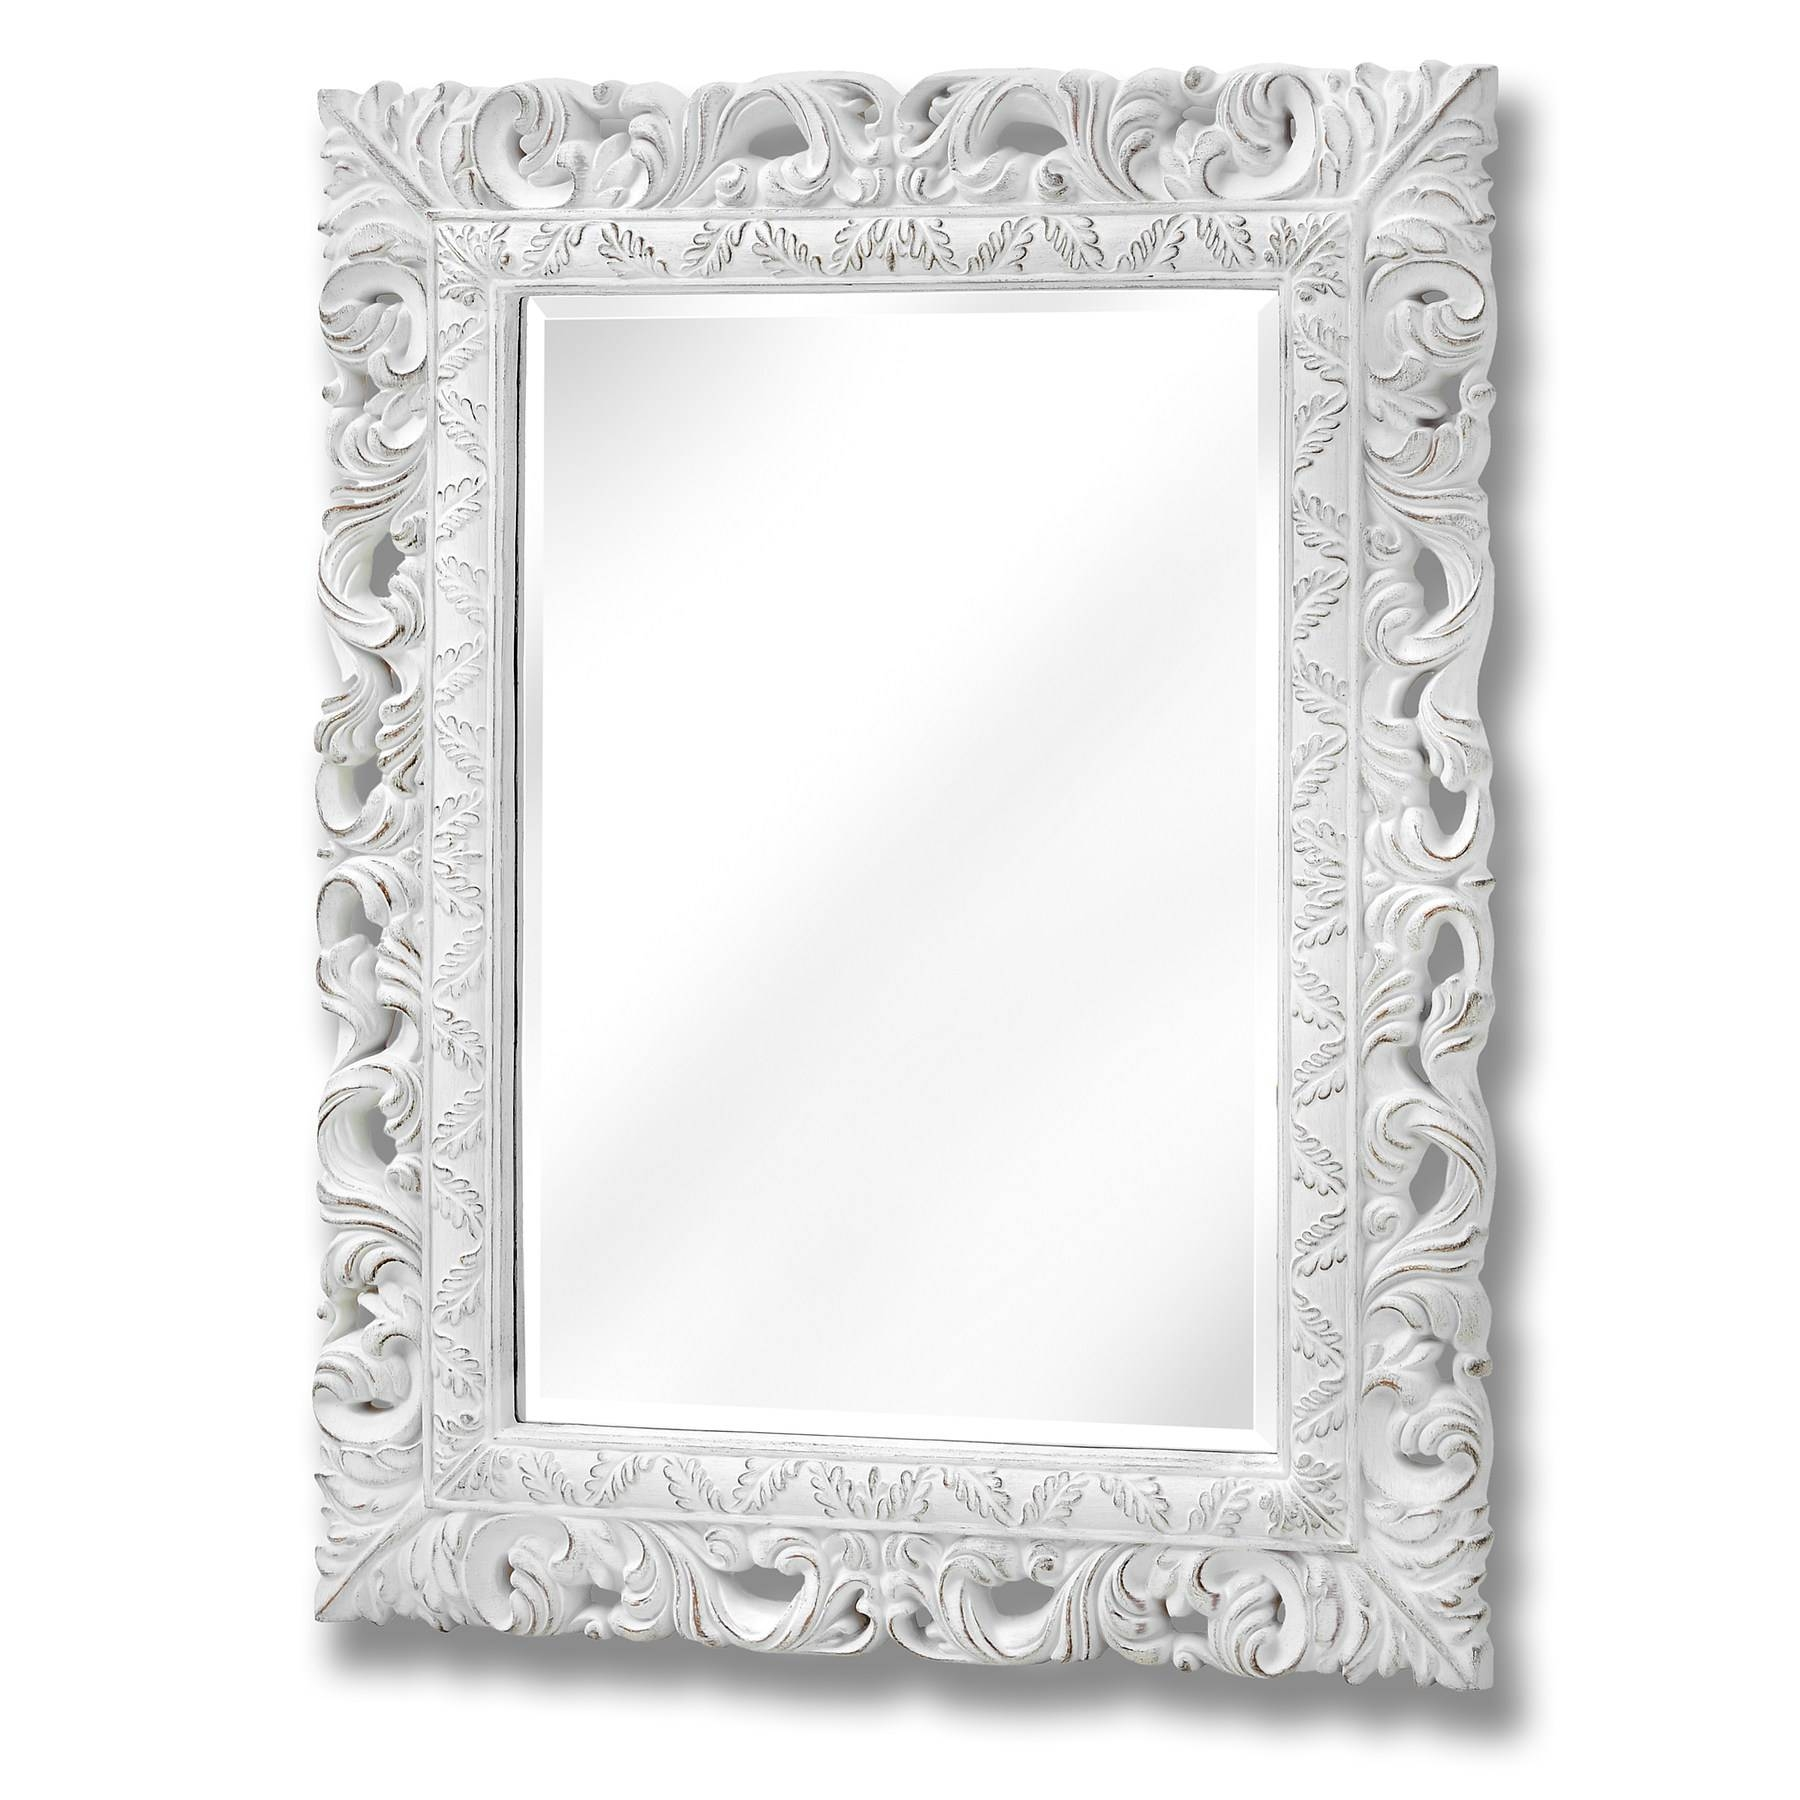 Antique White Ornate Leaf Wall Mirror – Arijacks throughout White Ornate Mirrors (Image 3 of 25)